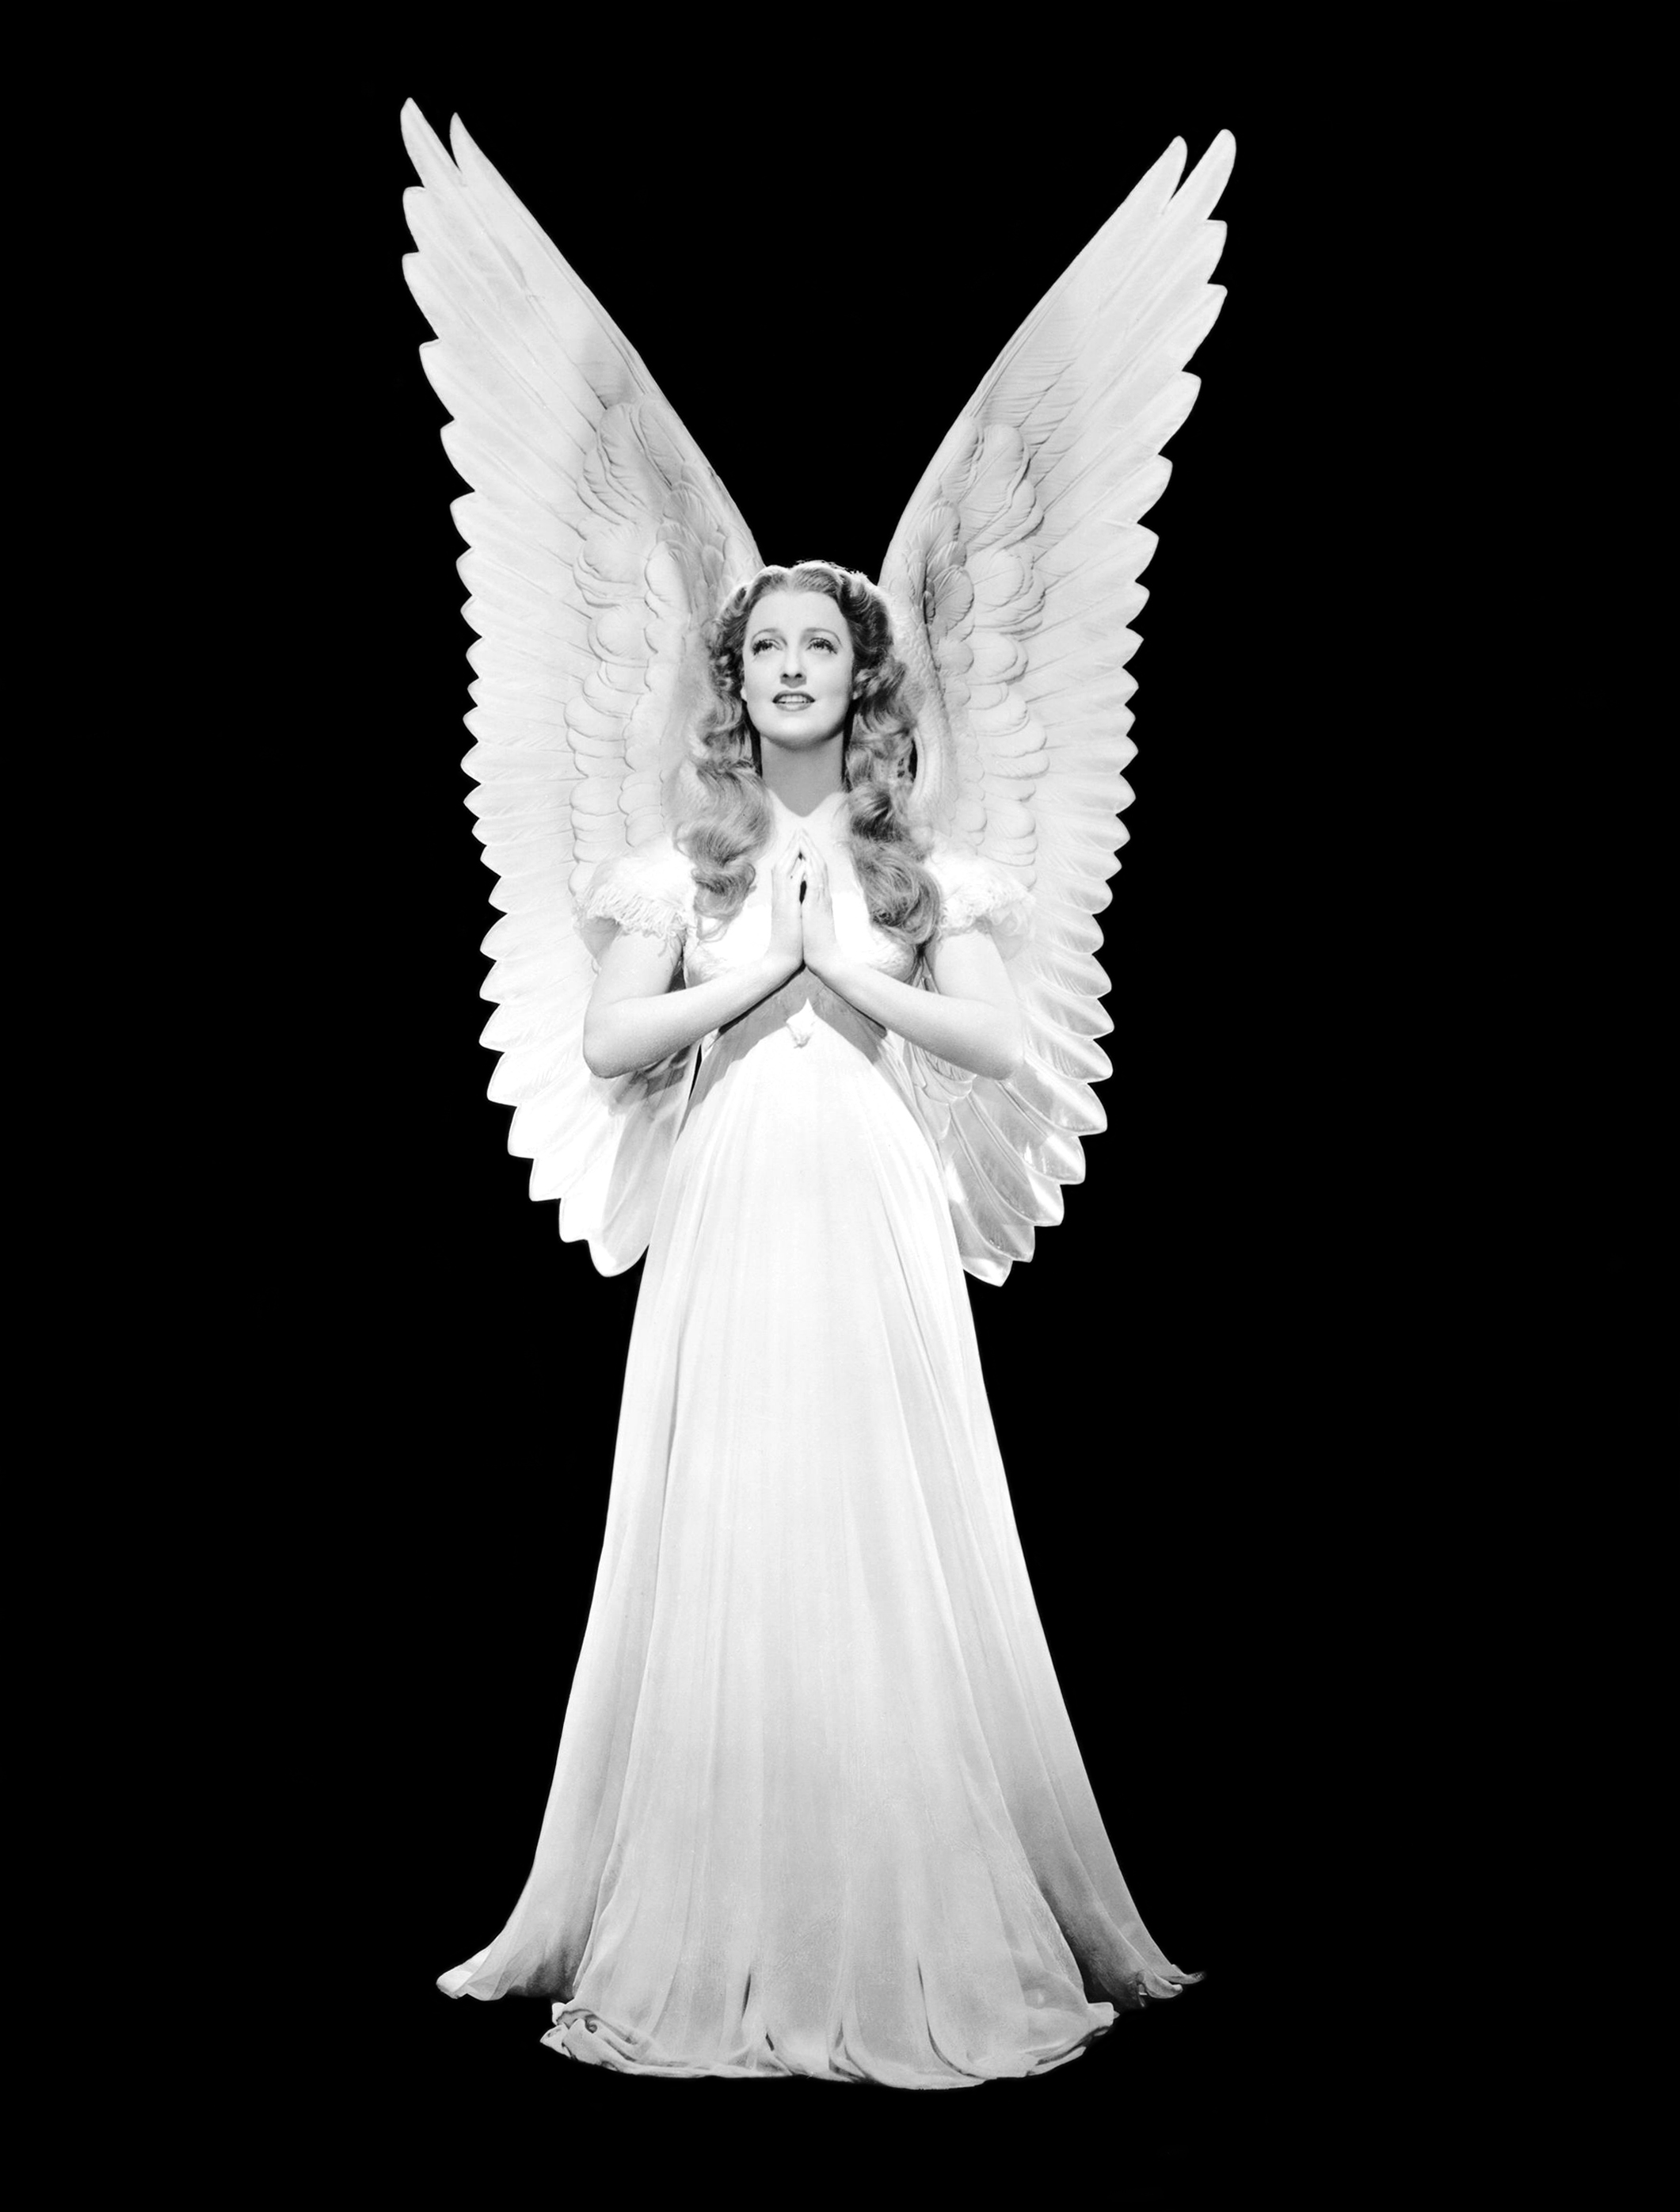 Angel Free Download PNG